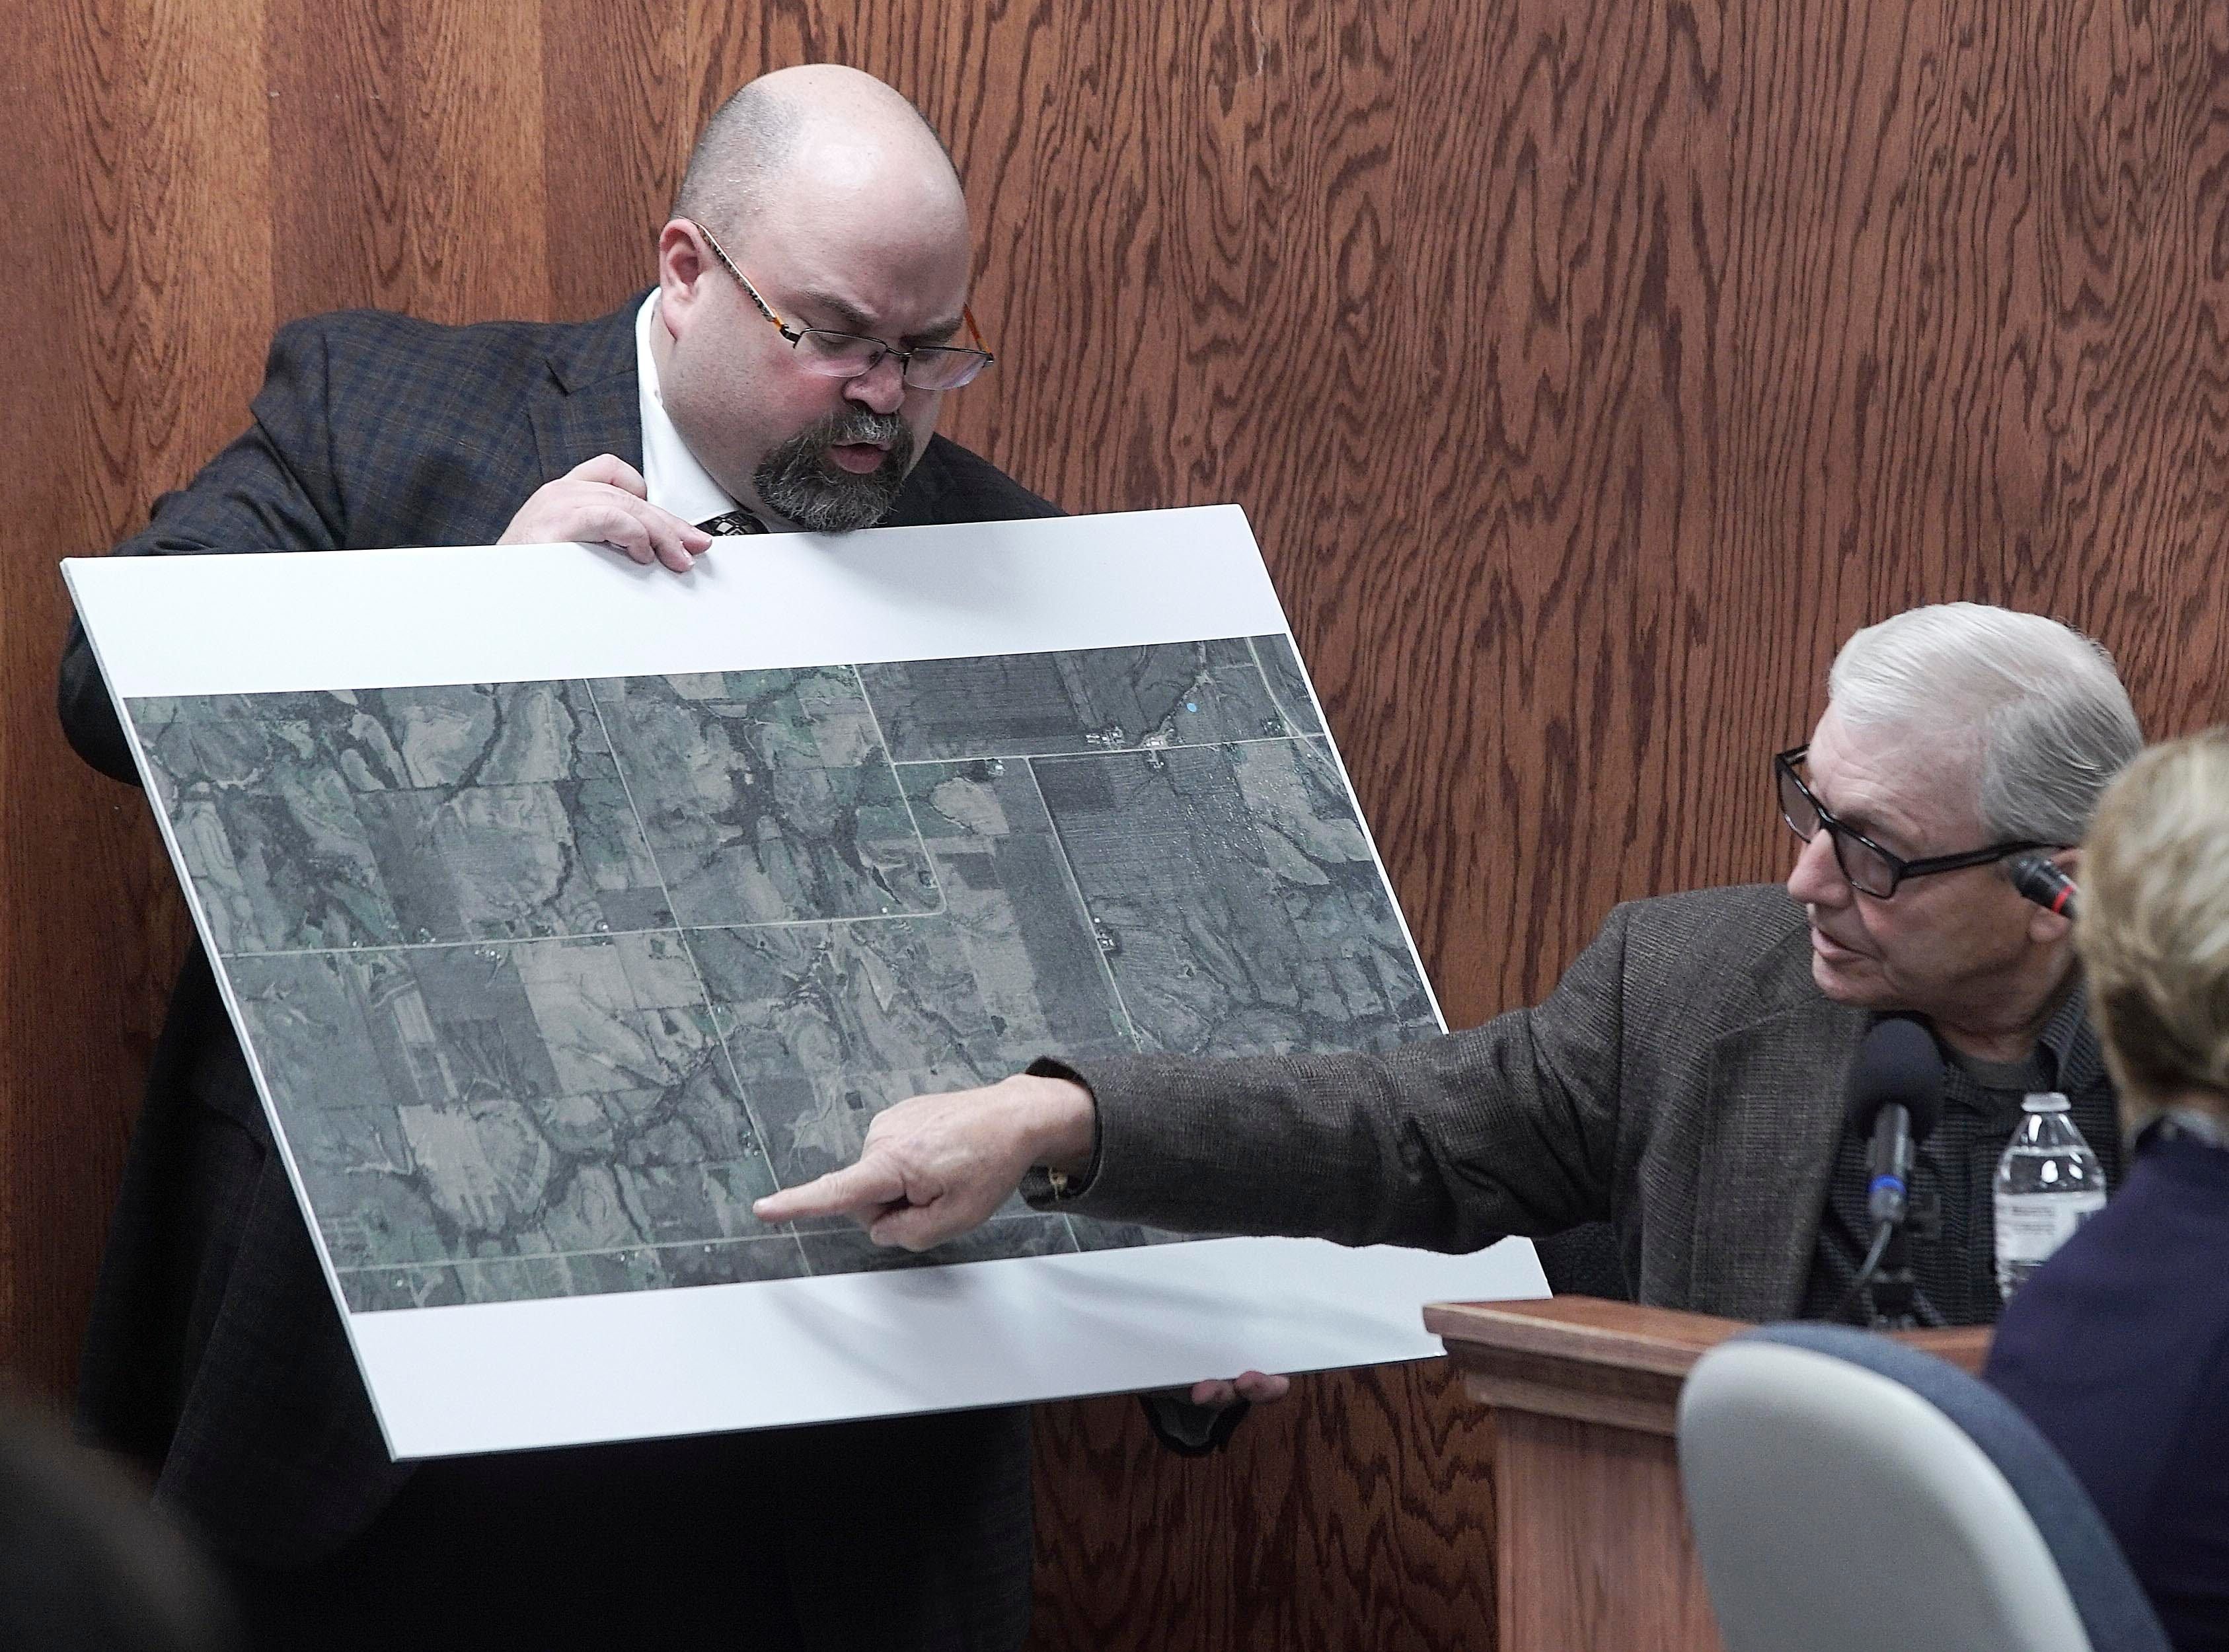 Bill Carter, 73, of Lacona, Iowa, points to his rural Marion County home on a map held by the county's prosecutor, Ed Bull, on Thursday, March 14, 2019, during the murder trial of his son, Jason Carter, at the Pottawattamie County Courthouse in Council Bluffs. Jason Carter is accused of fatally shooting his mother, Shirley Carter, in 2015 at the farm where she and Bill Carter lived.